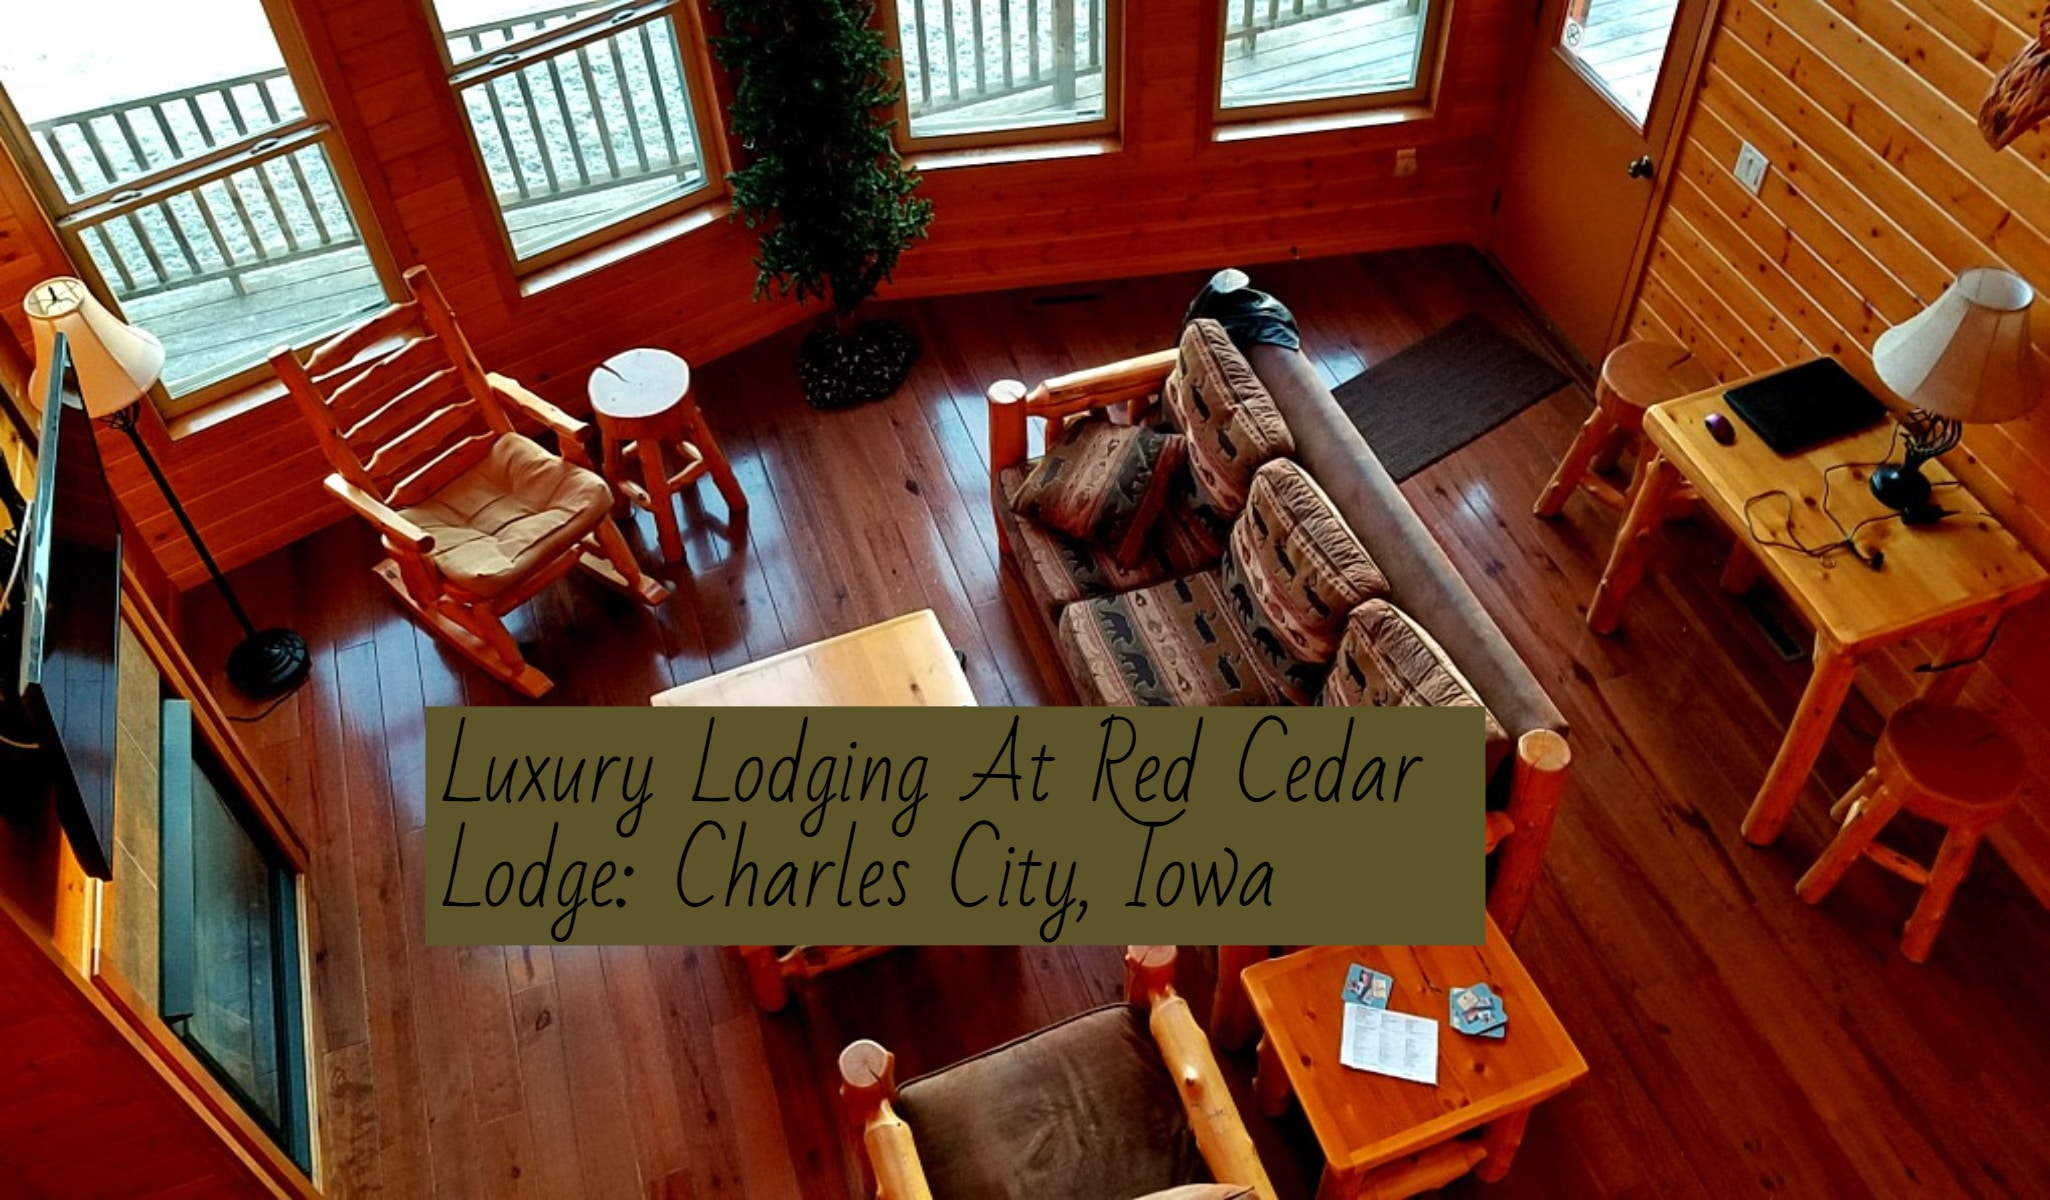 A Romantic Get A Way At Red Cedar Lodge In Charles City, Iowa